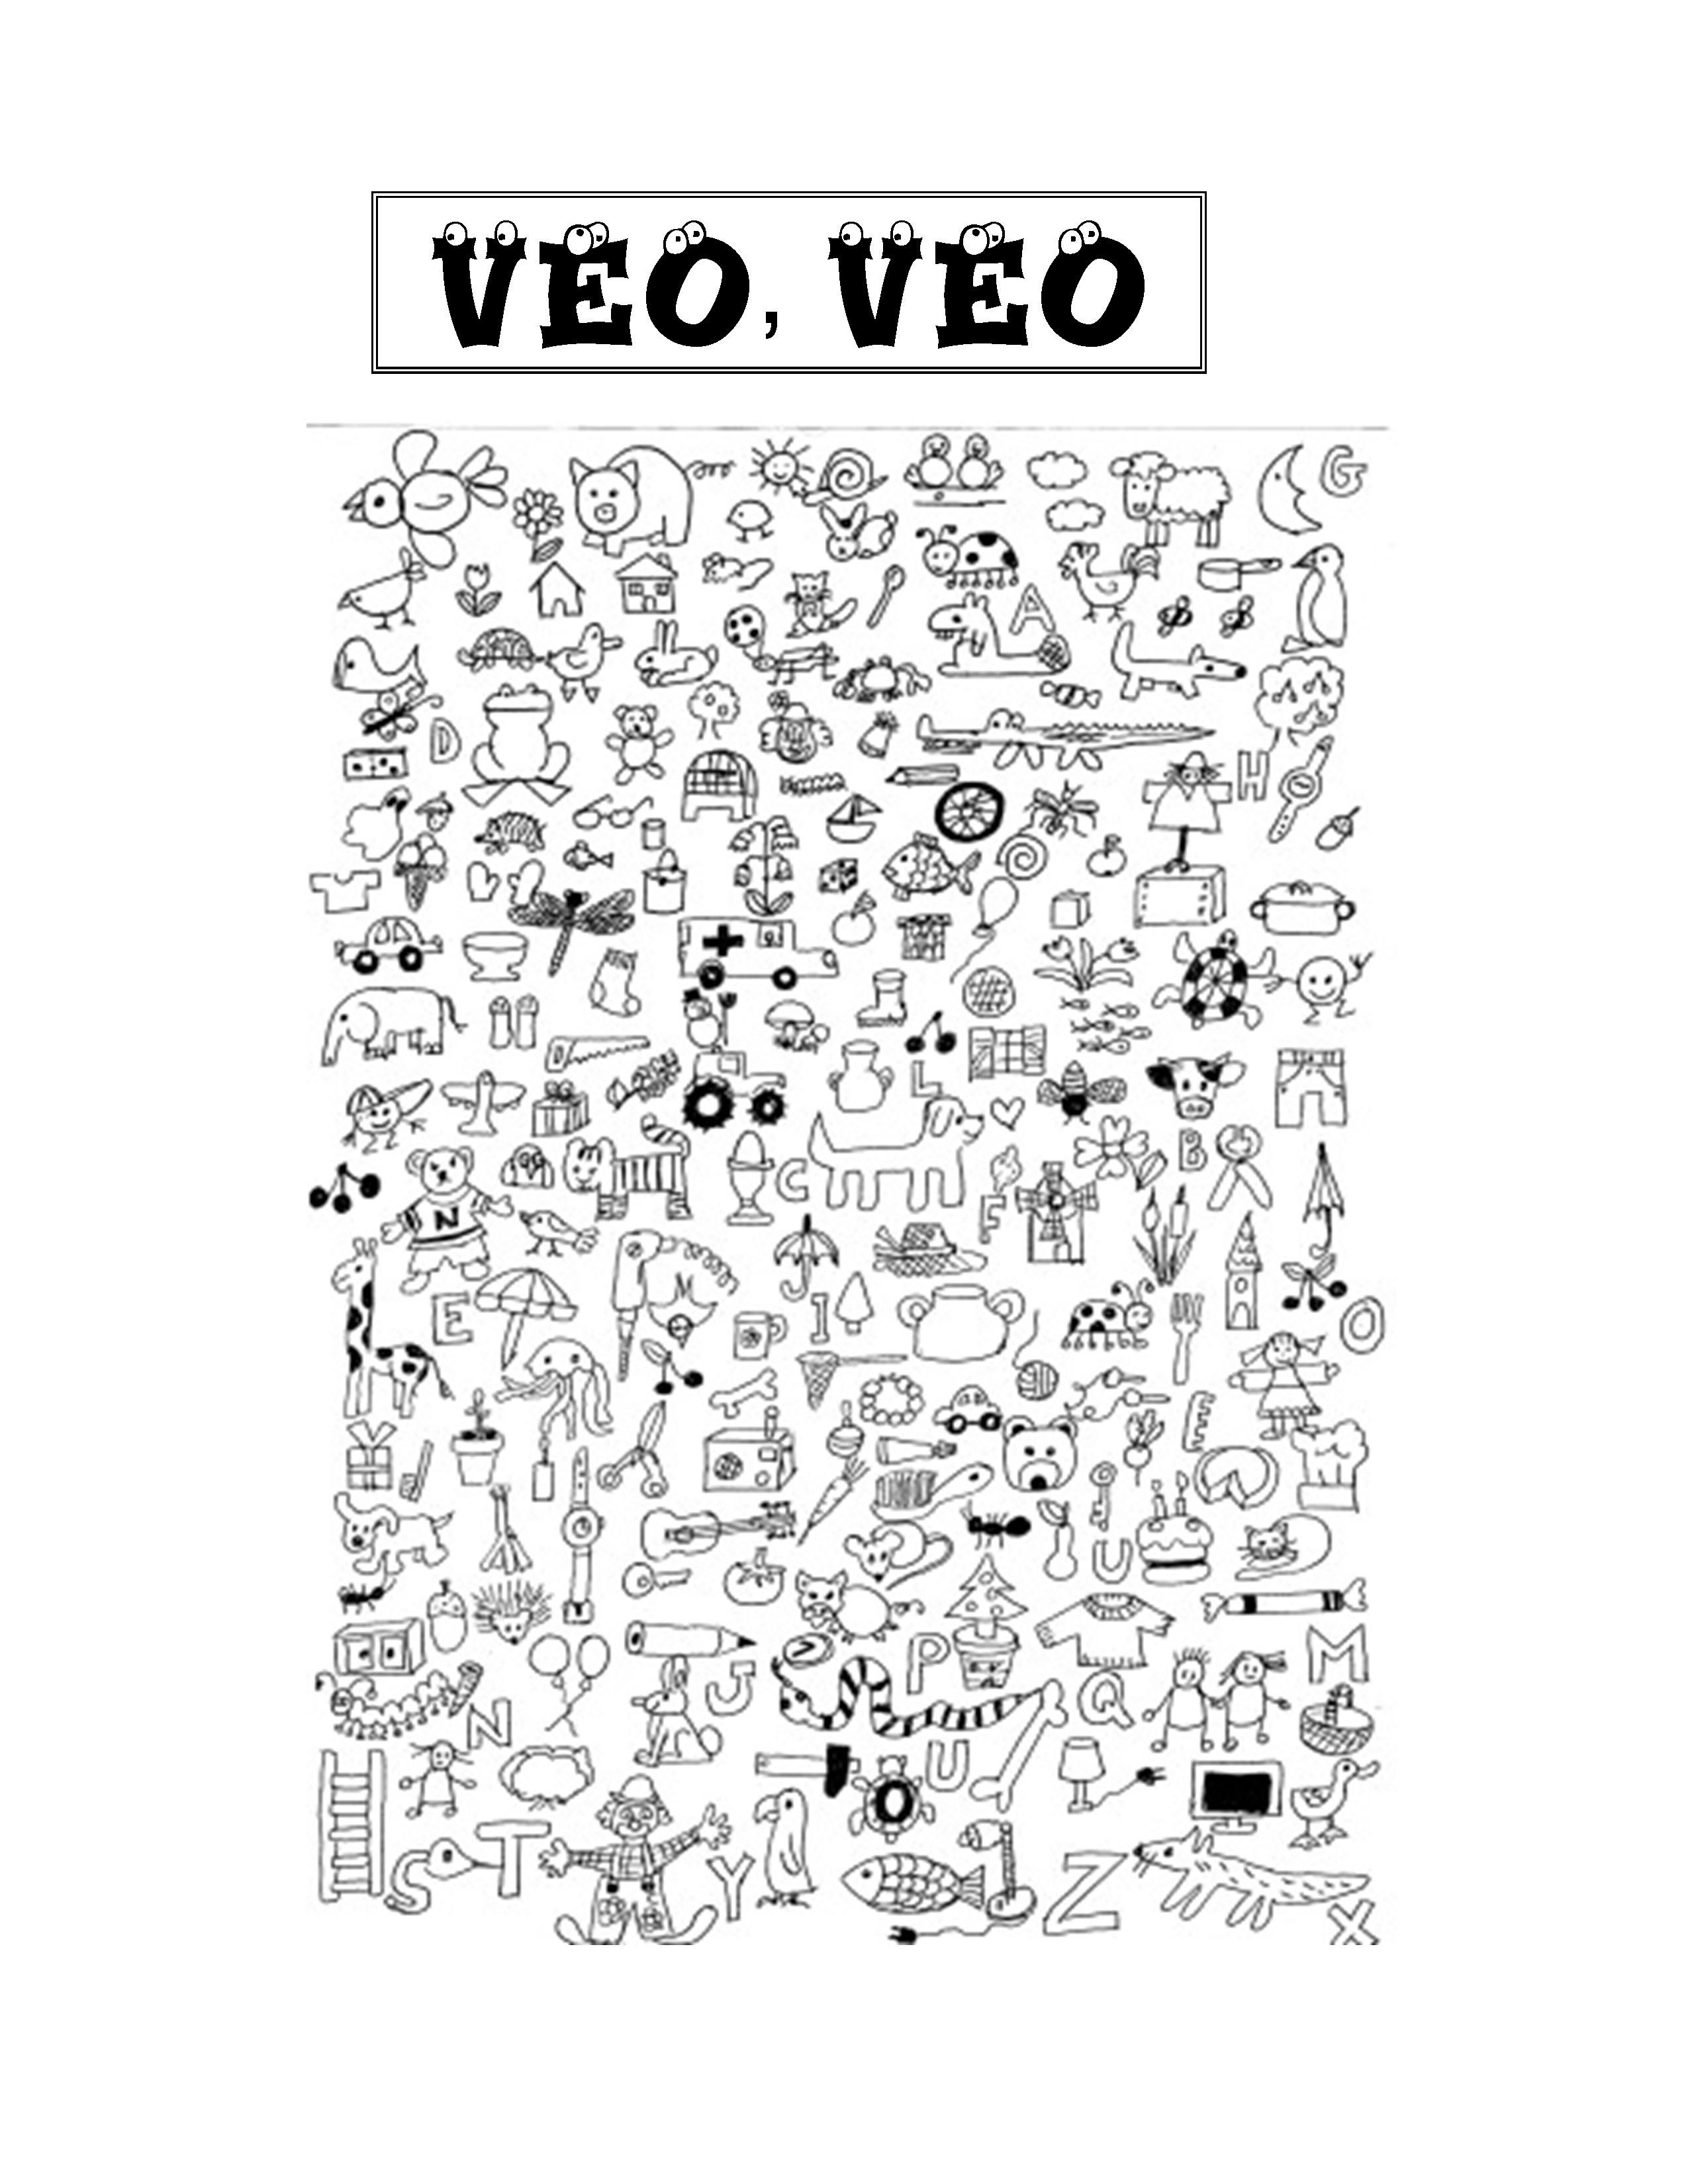 I spy Game. Veo, veo (With images) Outside cushions